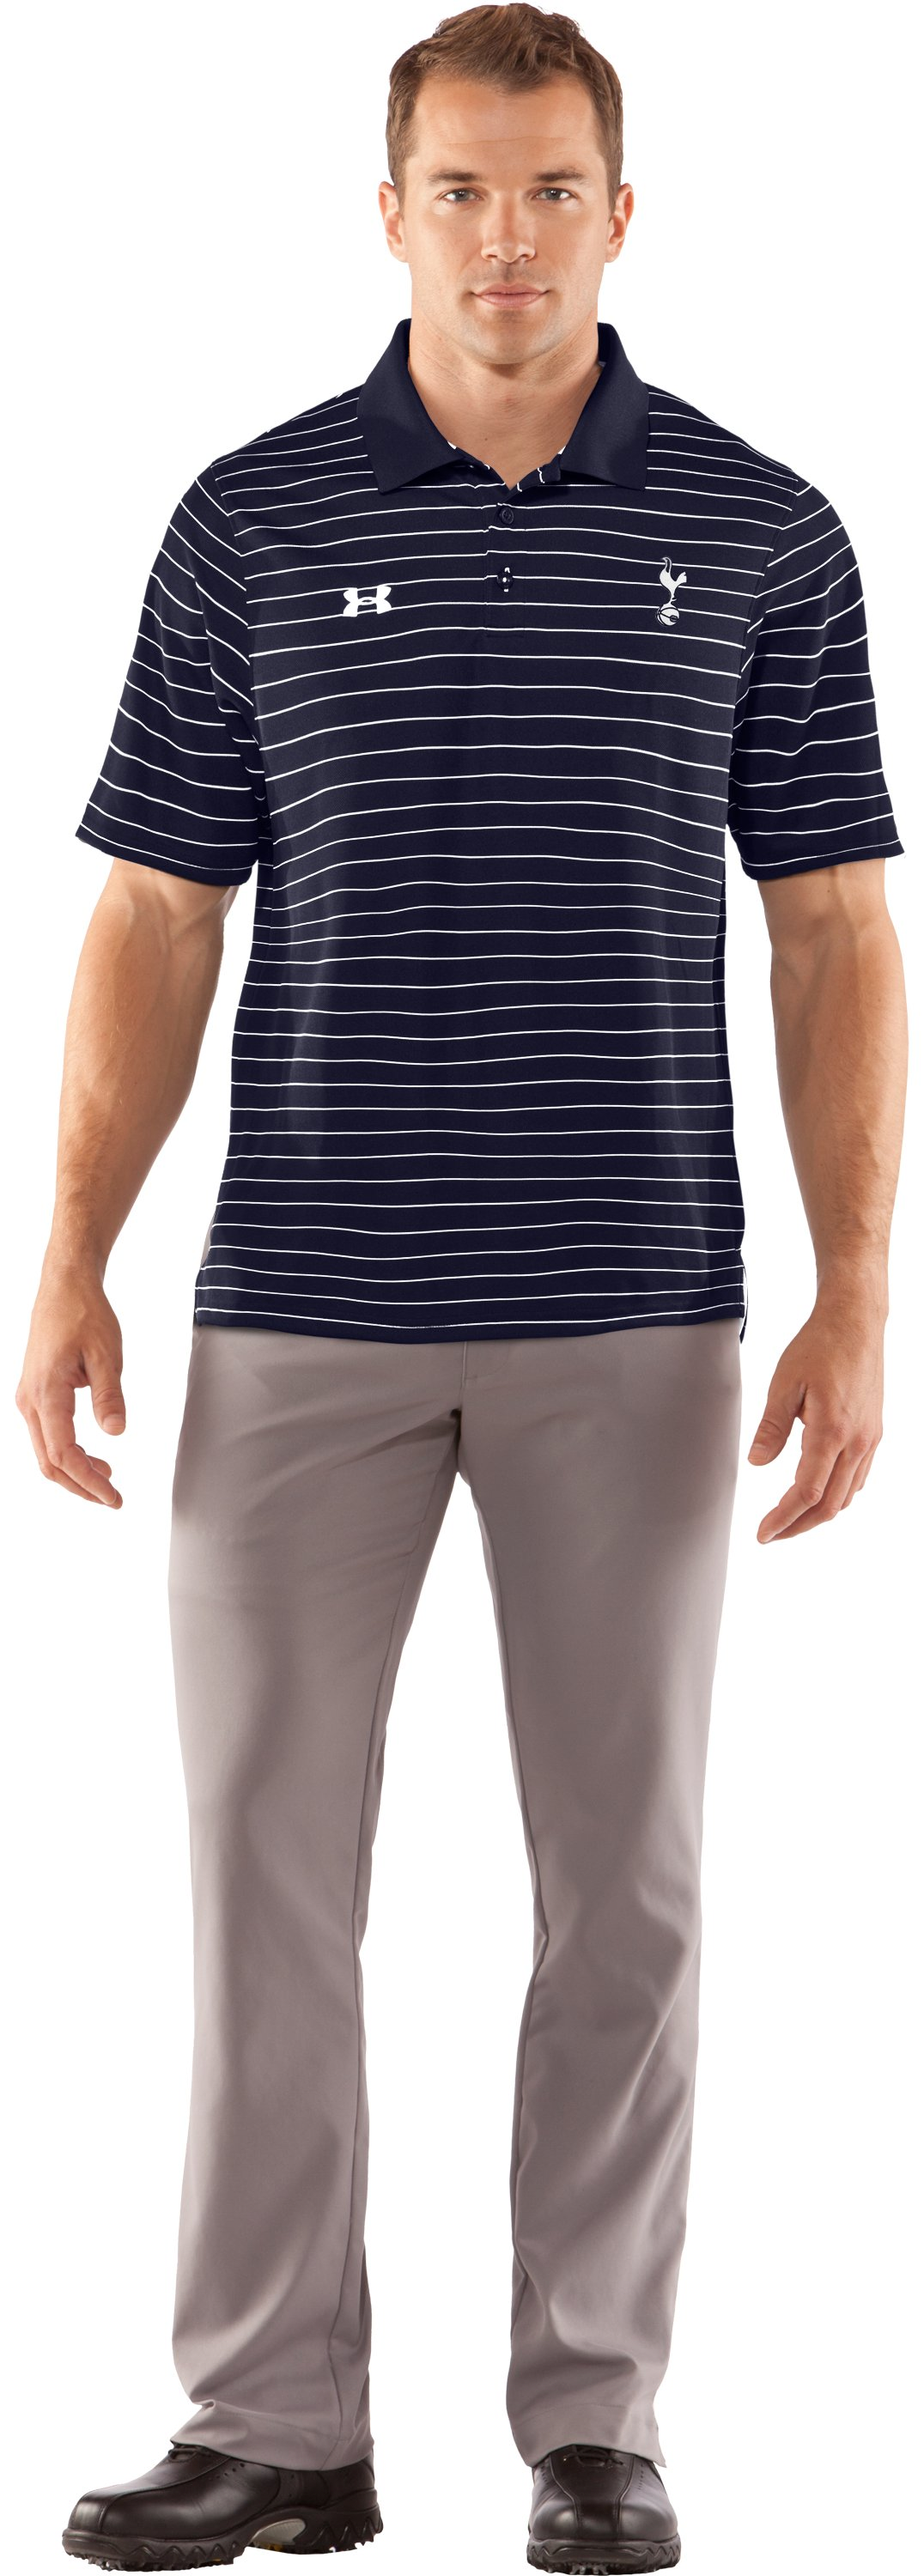 Men's Tottenham Hotspur Draw Stripe Polo, Midnight Navy, Front